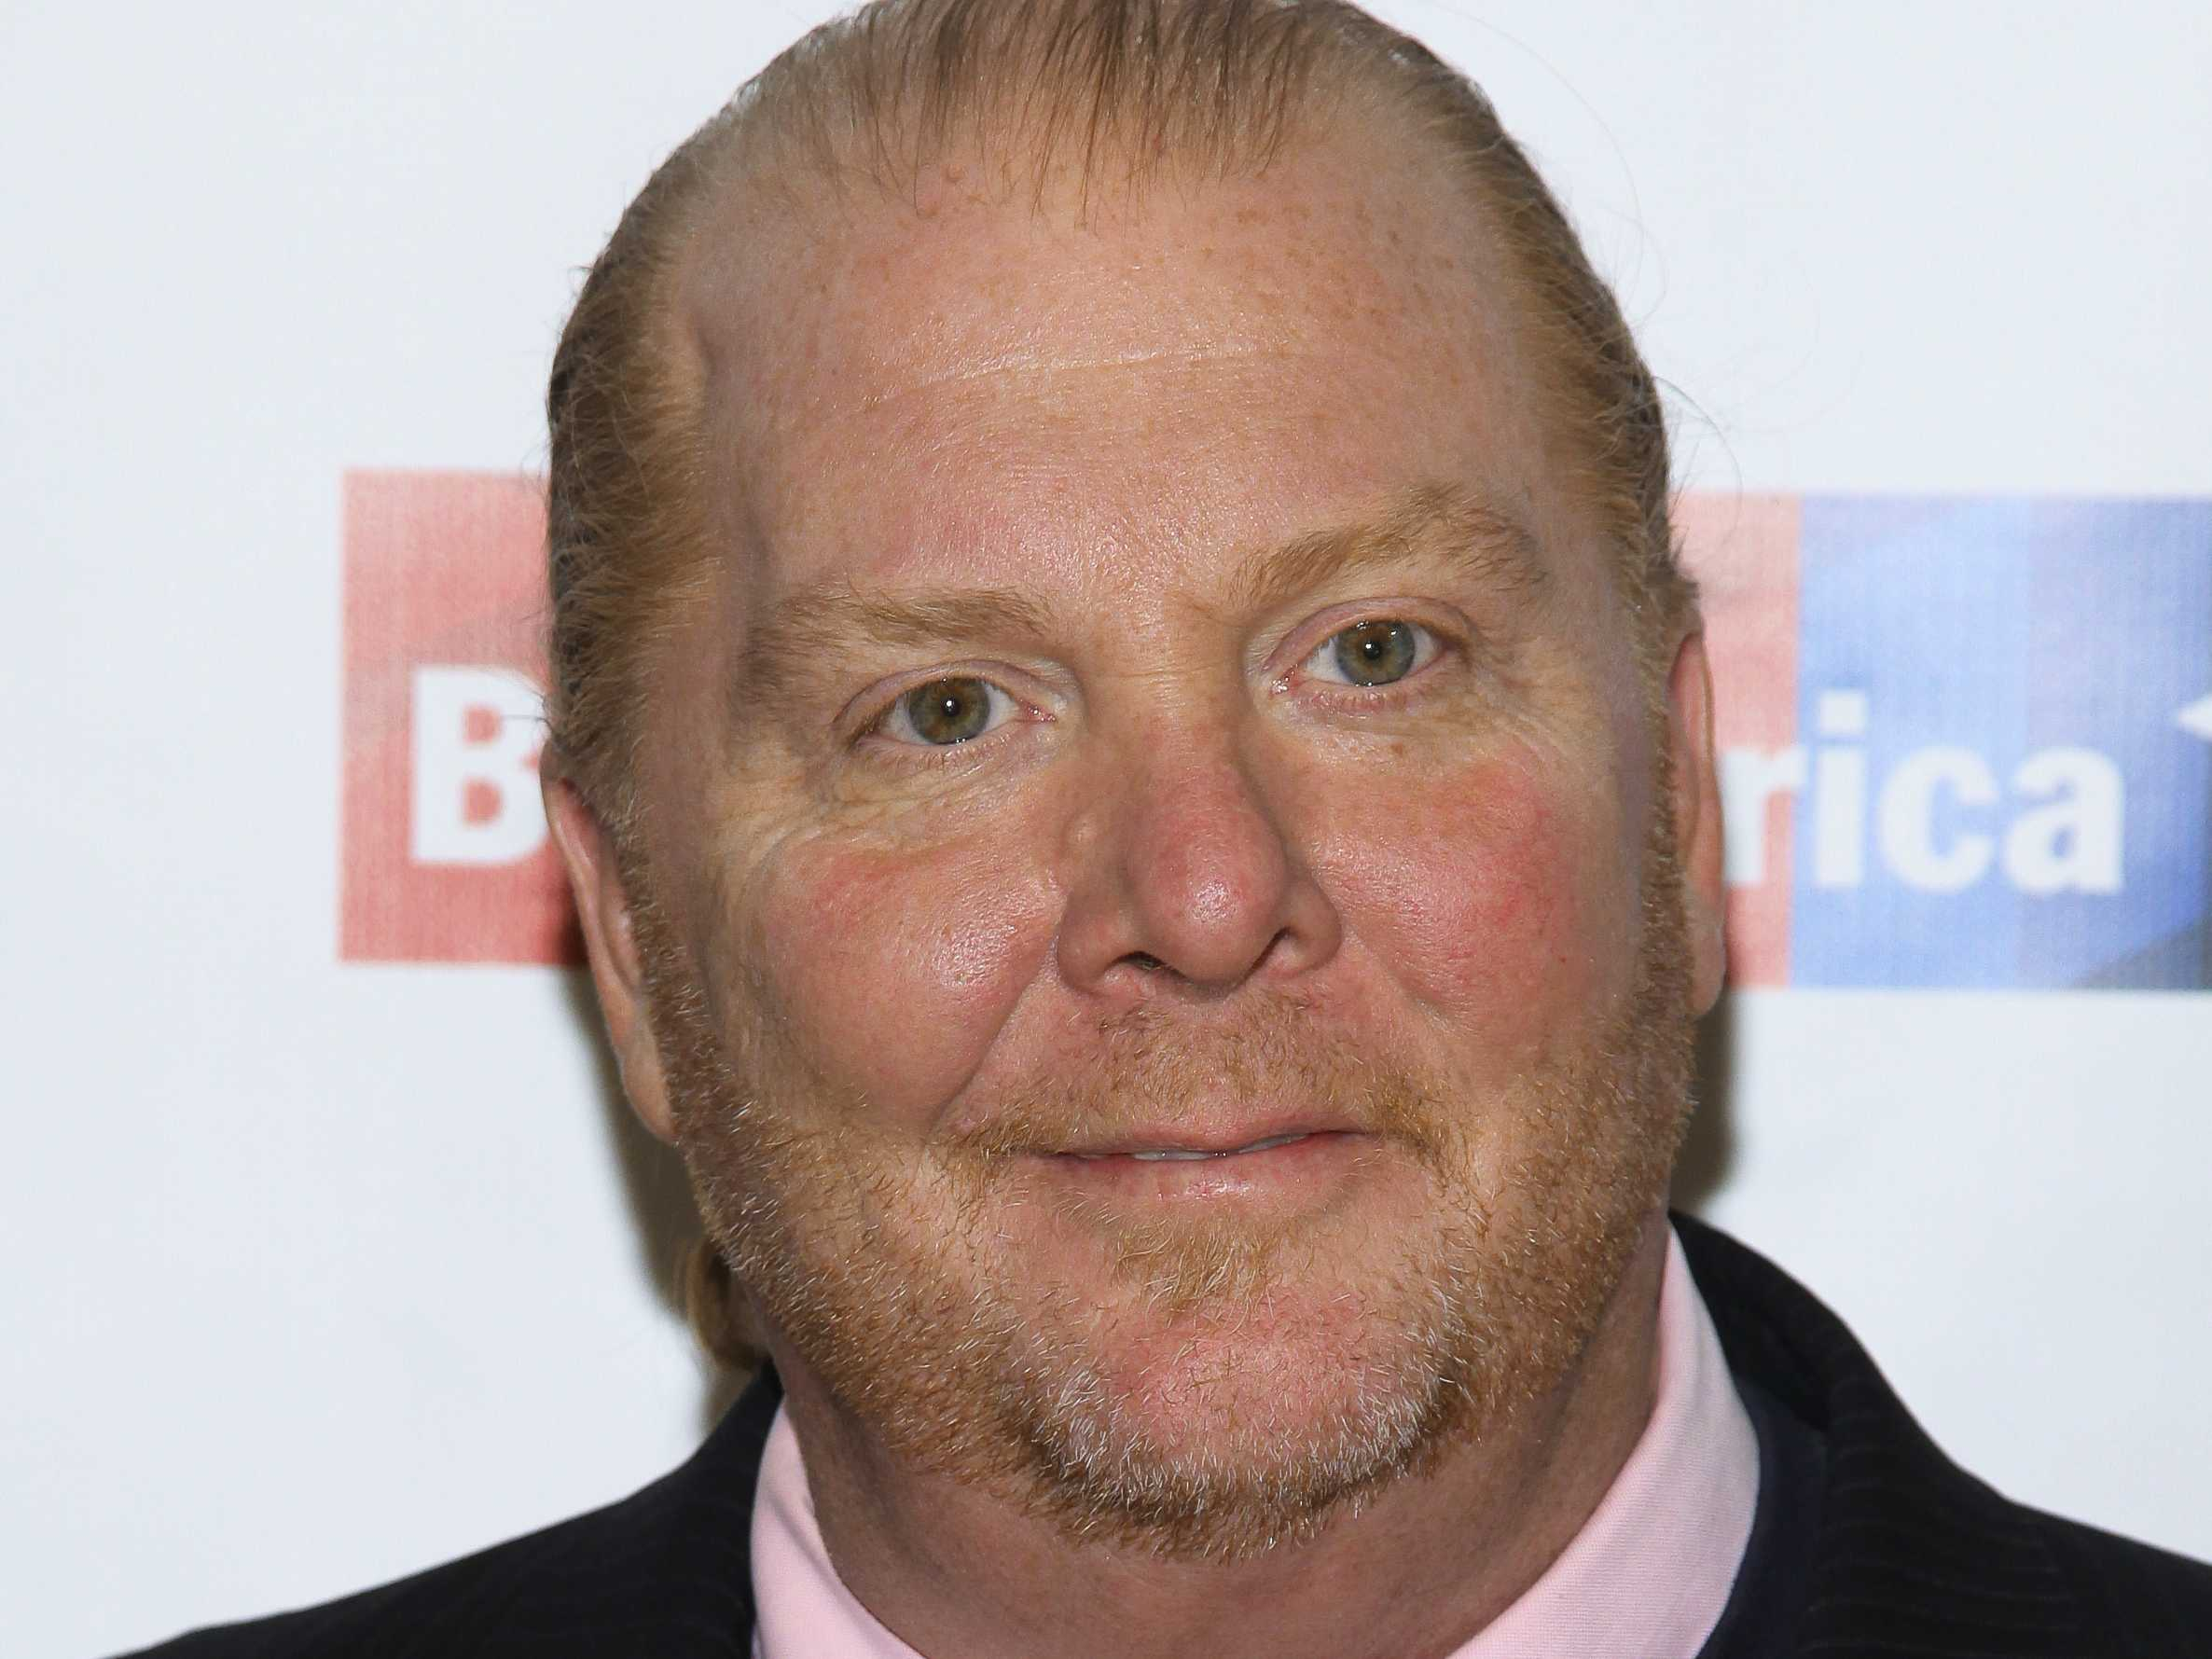 Mario Batali Tripped Up by Sexual Misconduct Allegations